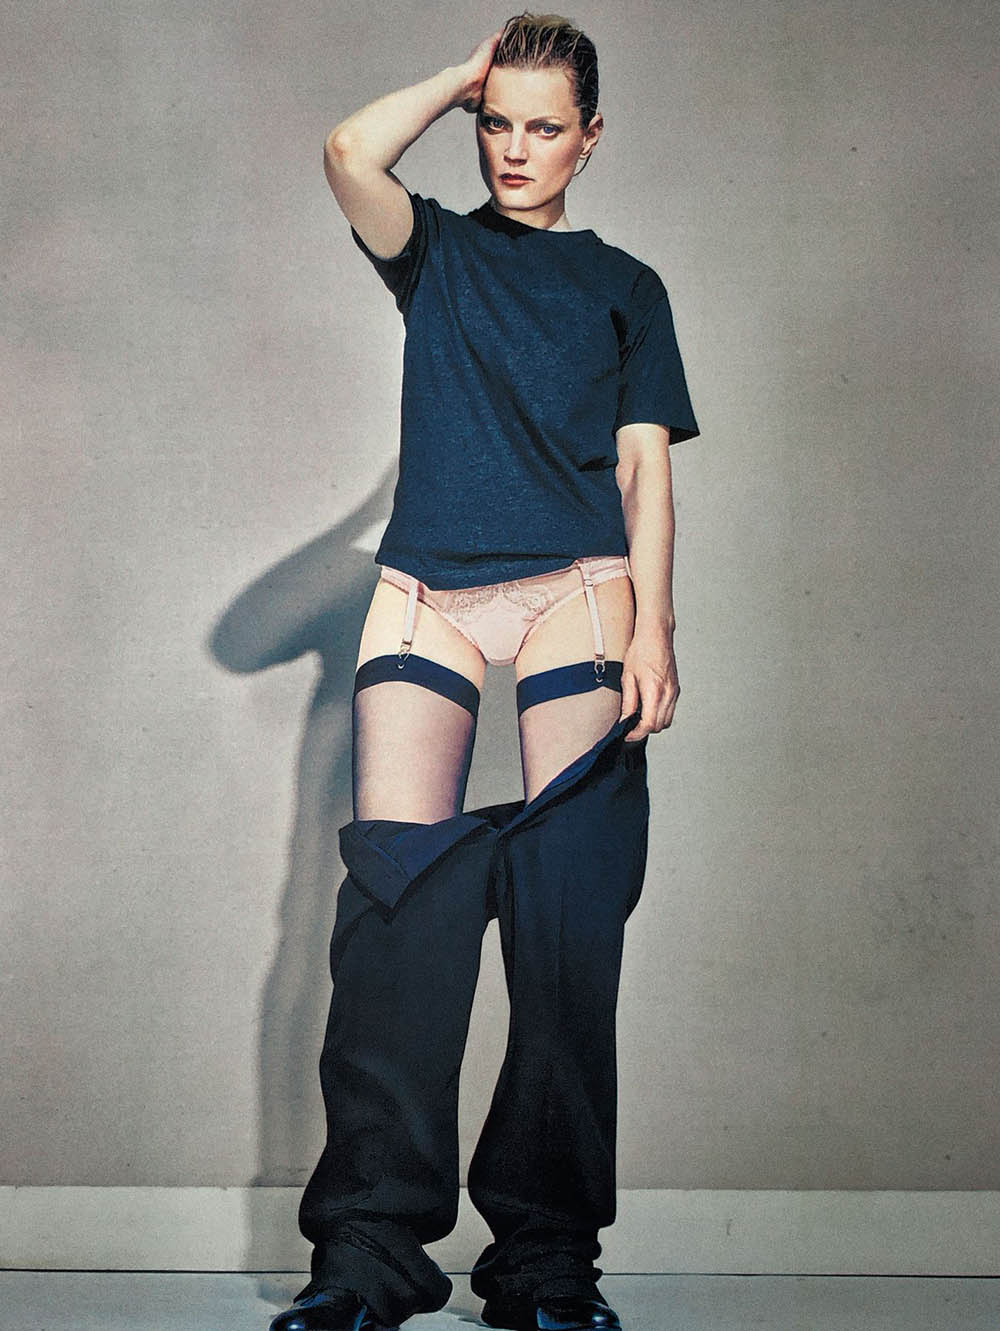 Deviating-From-Gender-by-Steven-Klein-for-CR-Fashion-Book-Issue- (11).jpg